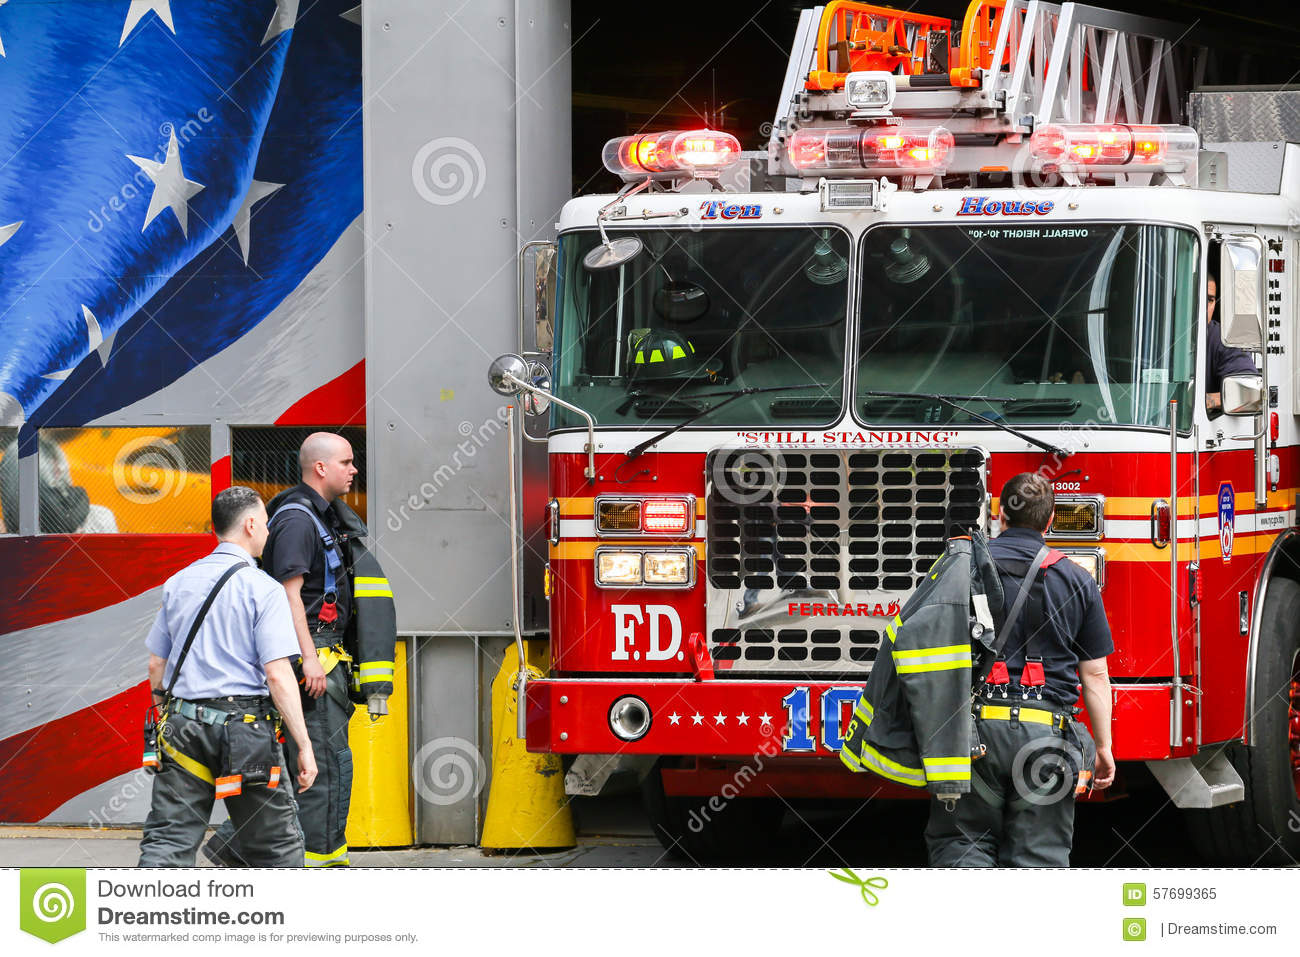 The Daily Show with Jon Stewart New York City, Ten House Fire Station In NY Editorial Image - Image: 57699365